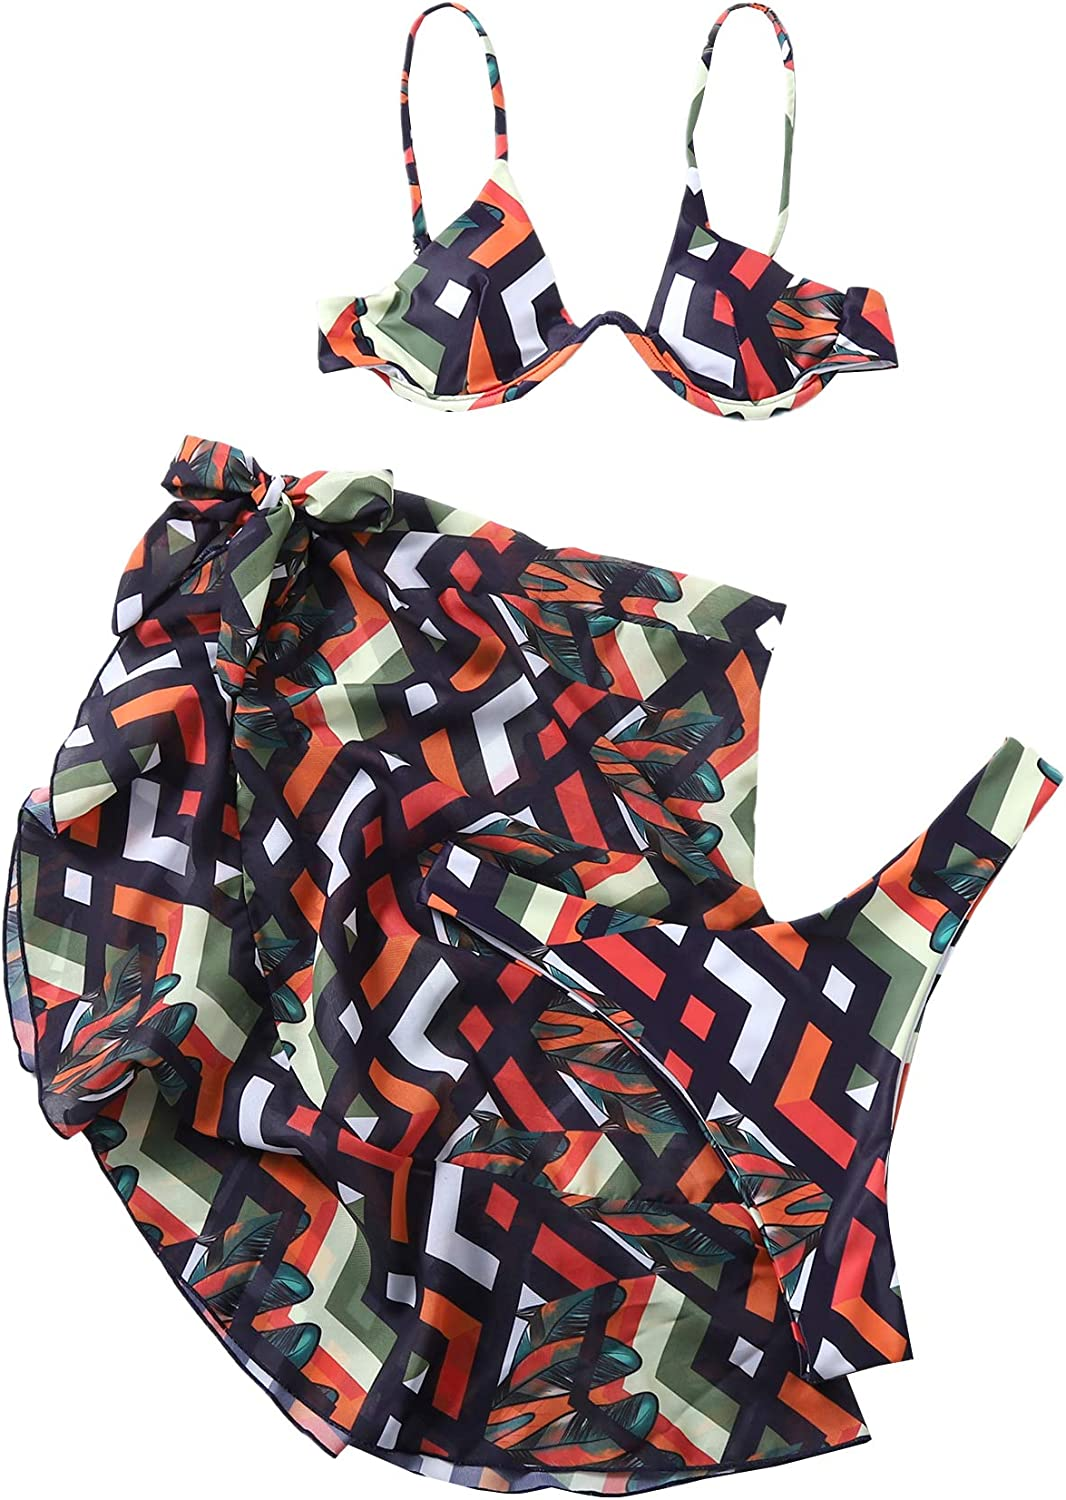 SOLY HUX Women's Spaghetti Strap Bikini Bathing Suits with Cover Up Beach Skirt 3 Piece Swimsuits Geometric Print S